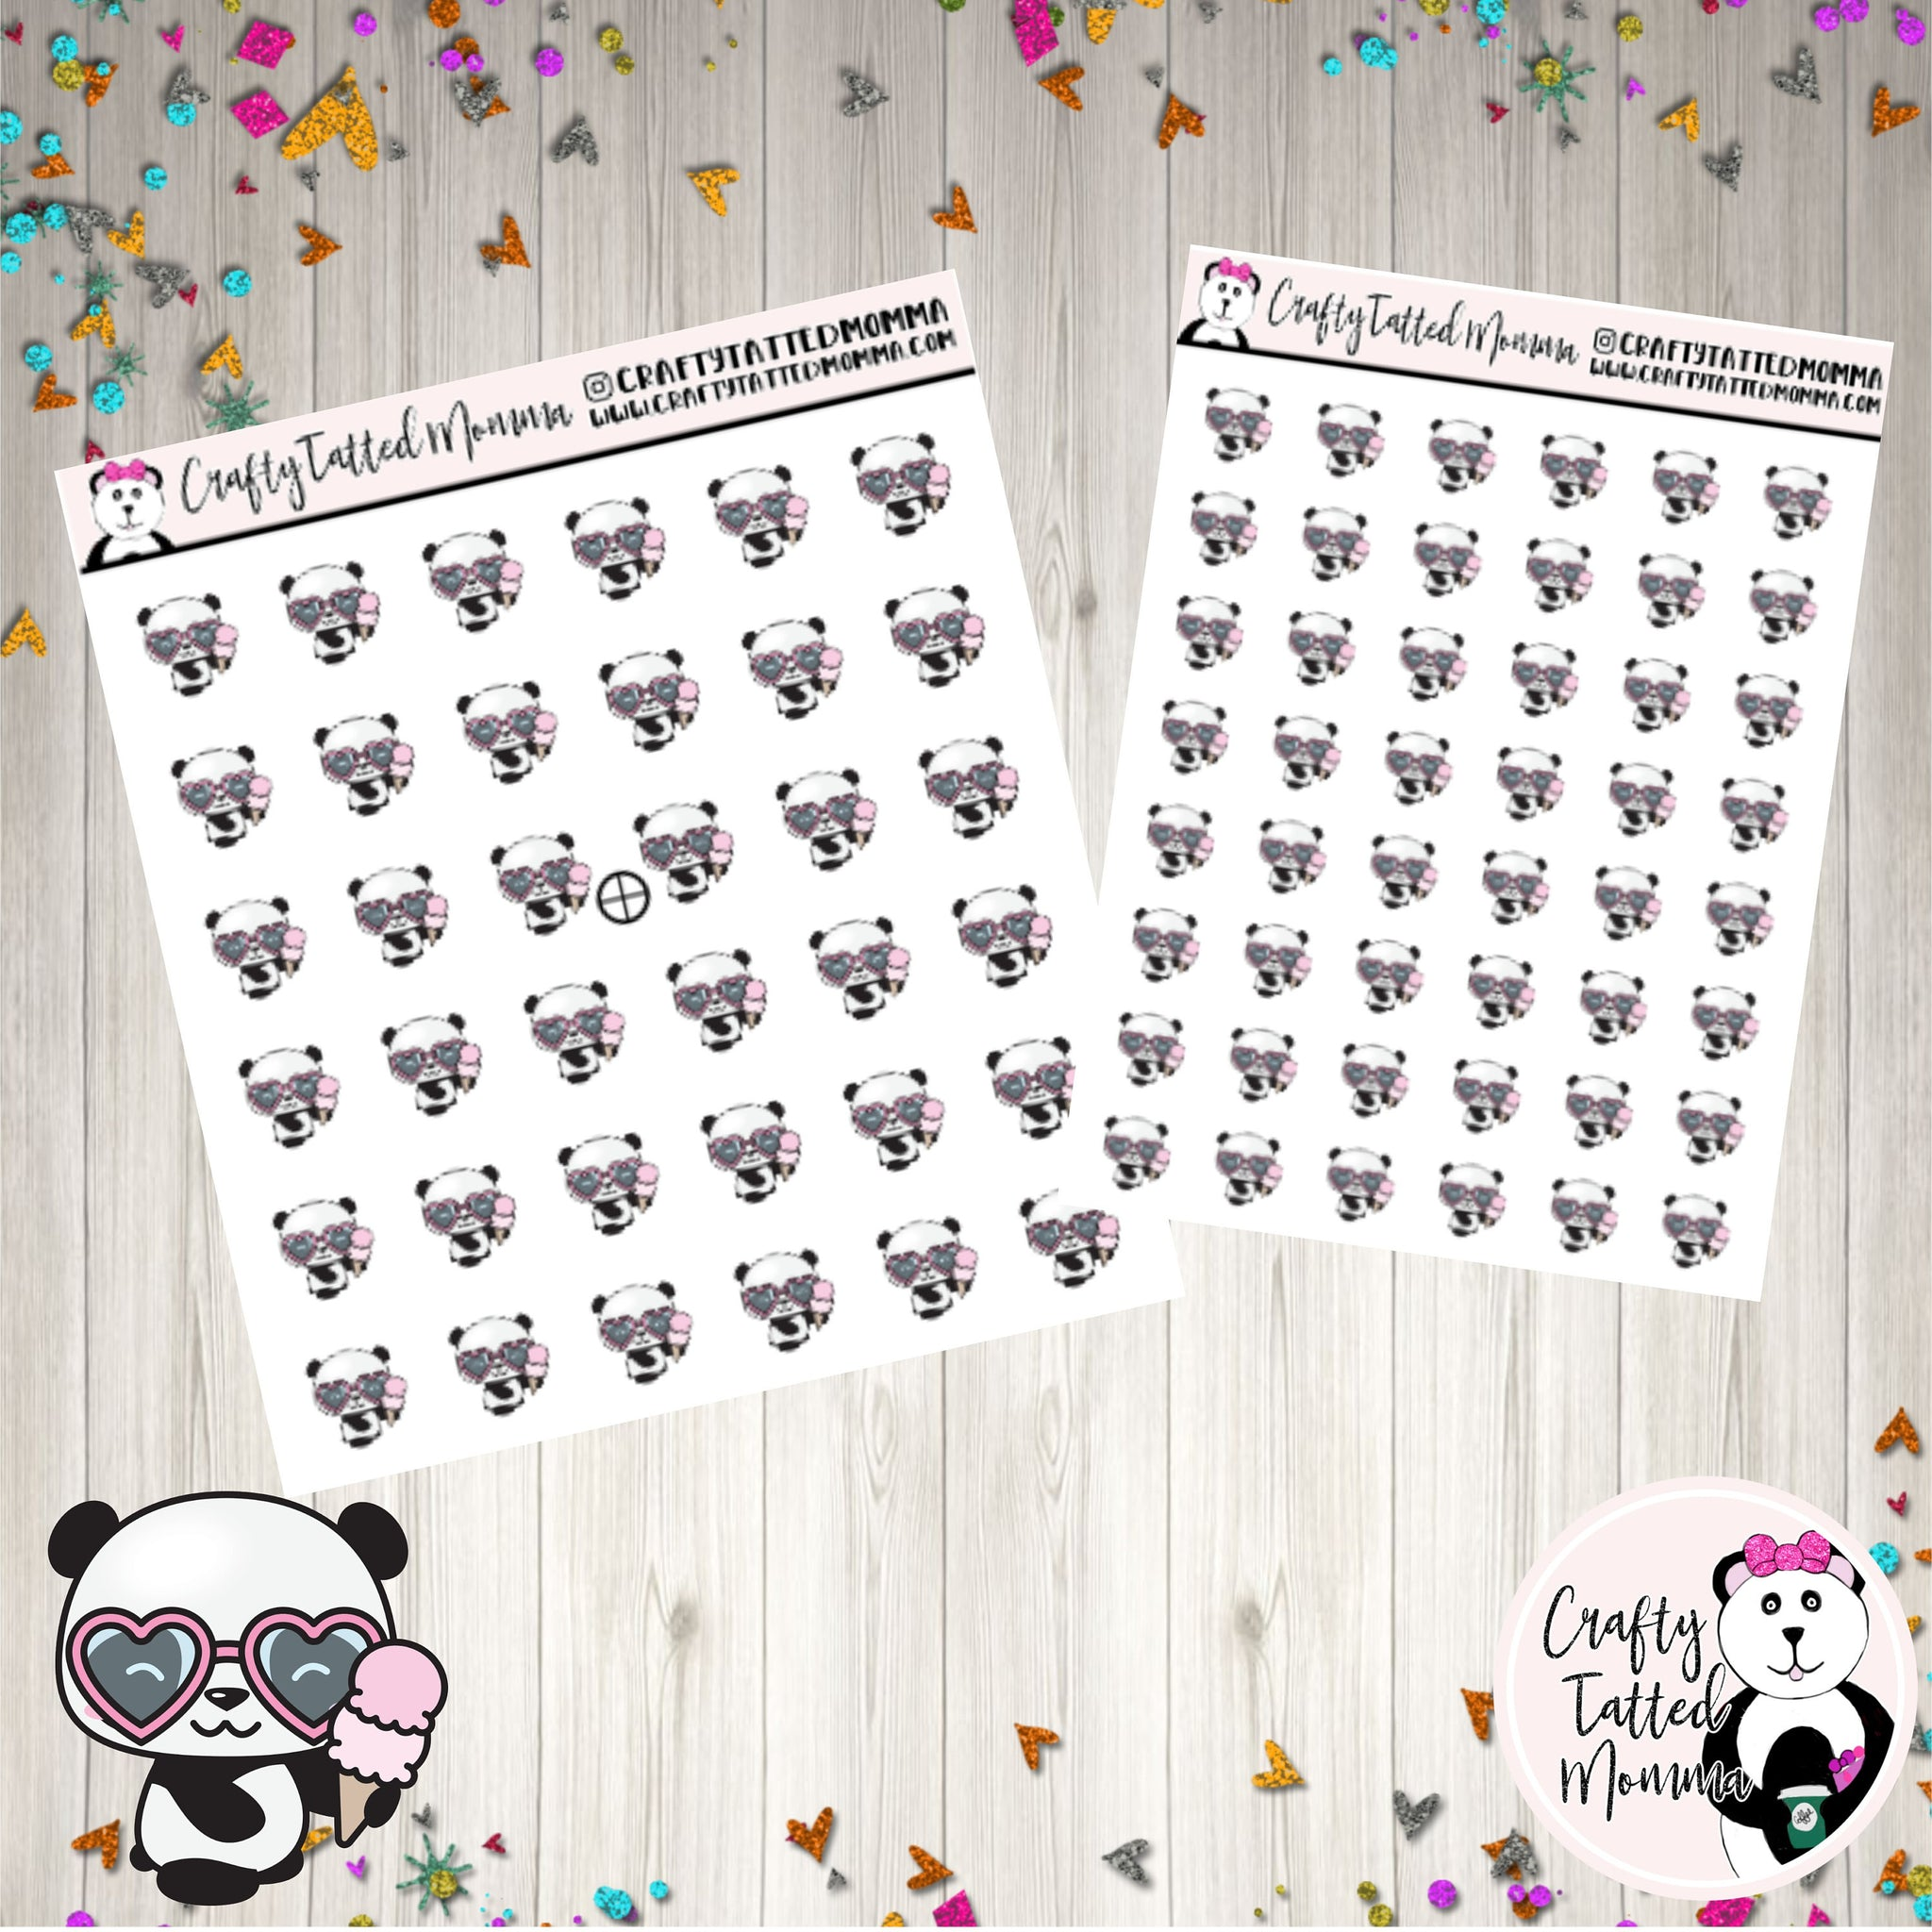 Zoe Eating Ice Cream   Panda Stickers   Planner Stickers   Character Stickers   Zoe the Panda   Functional Sticker   Ice Cream Sticker   Eating